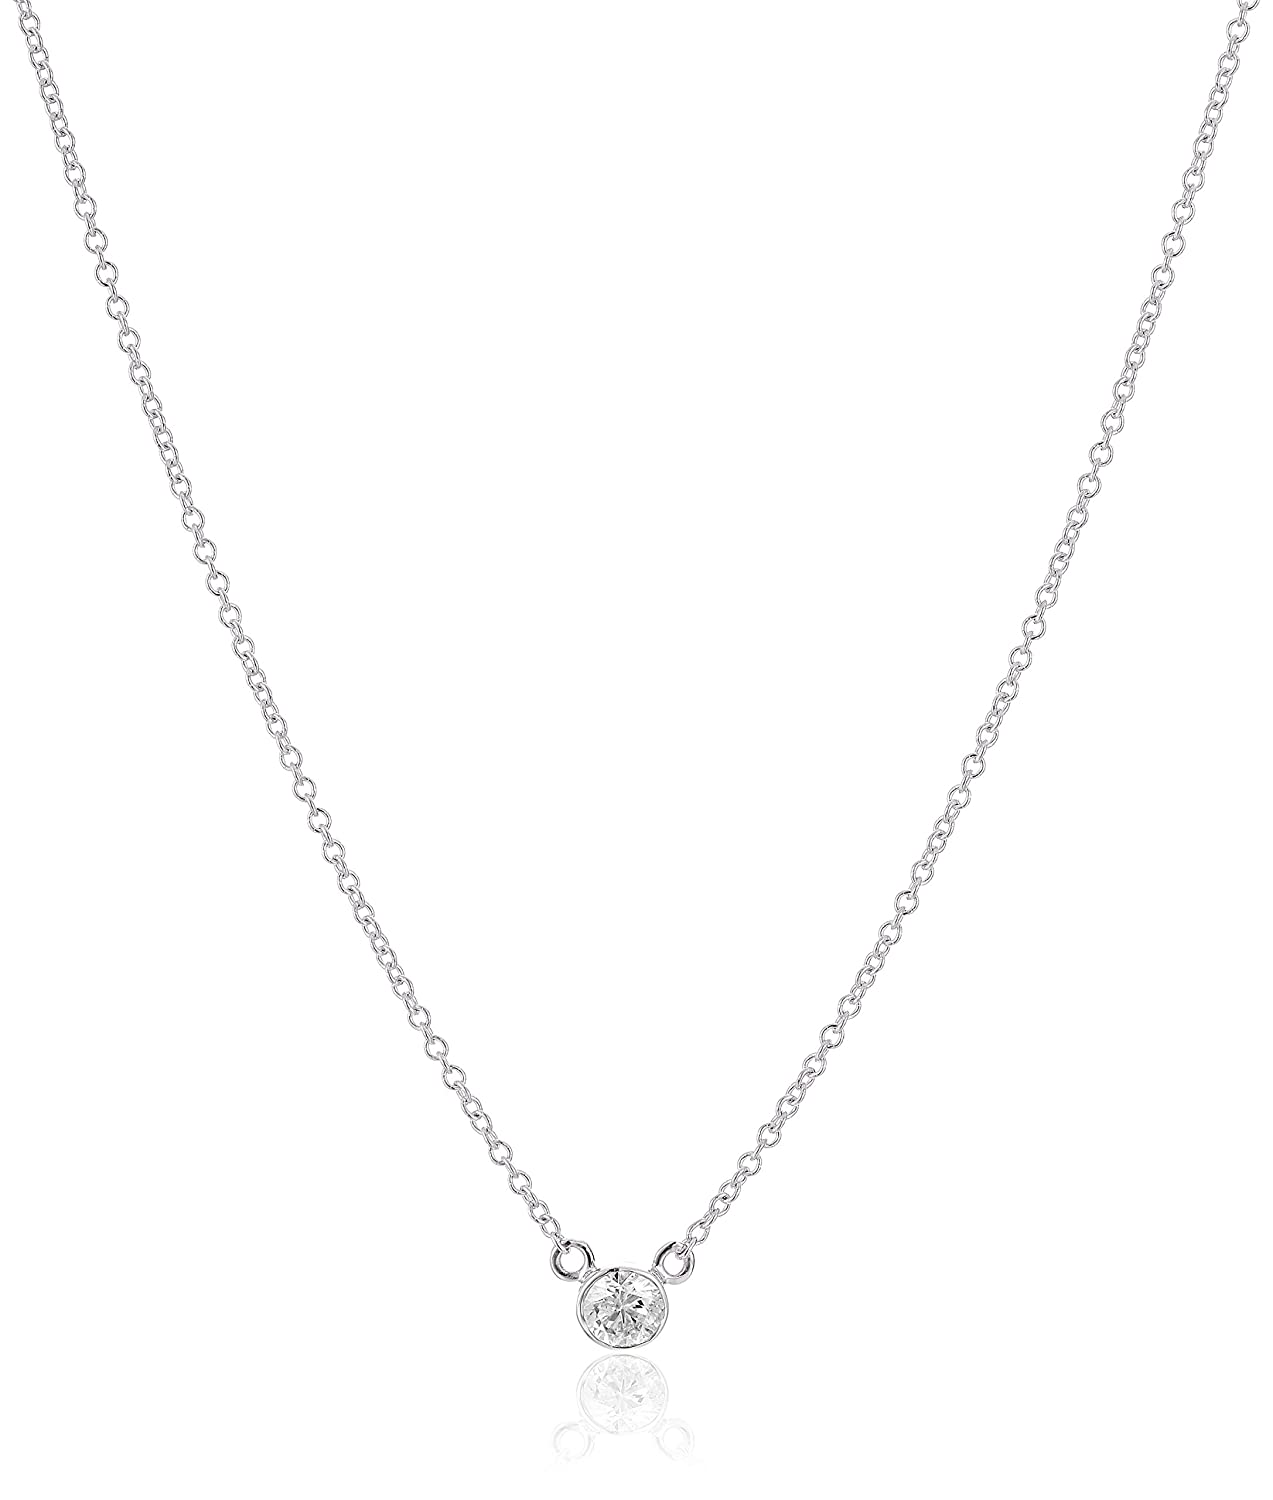 bezel yg collection diamond ef products necklace choker set